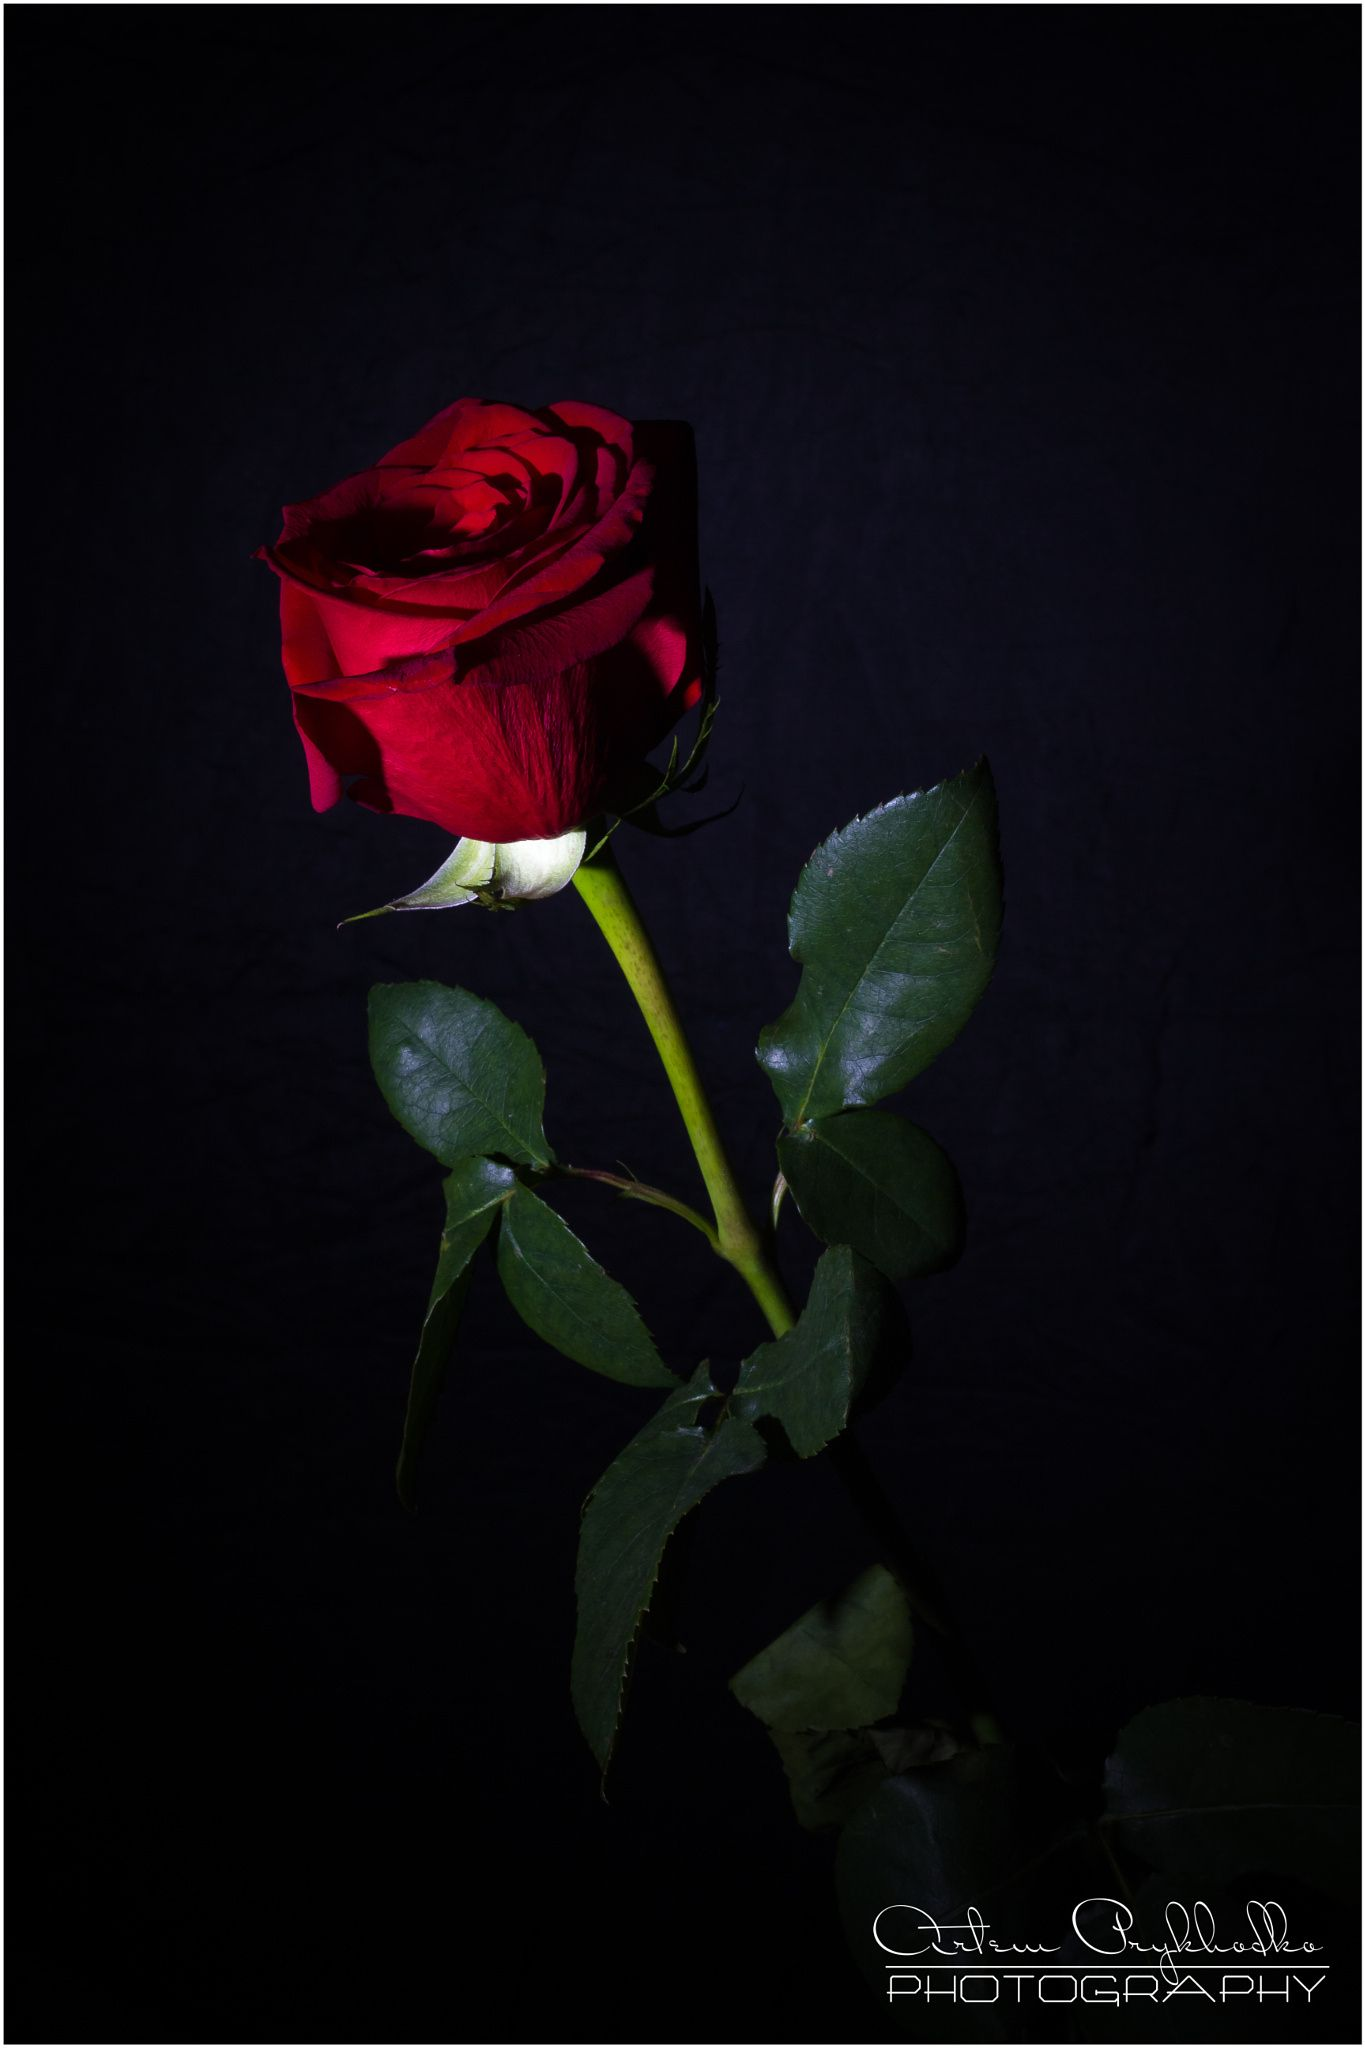 Pin By Slgudiel On Roses Dark Red Roses Beautiful Photography Nature Beautiful Red Roses